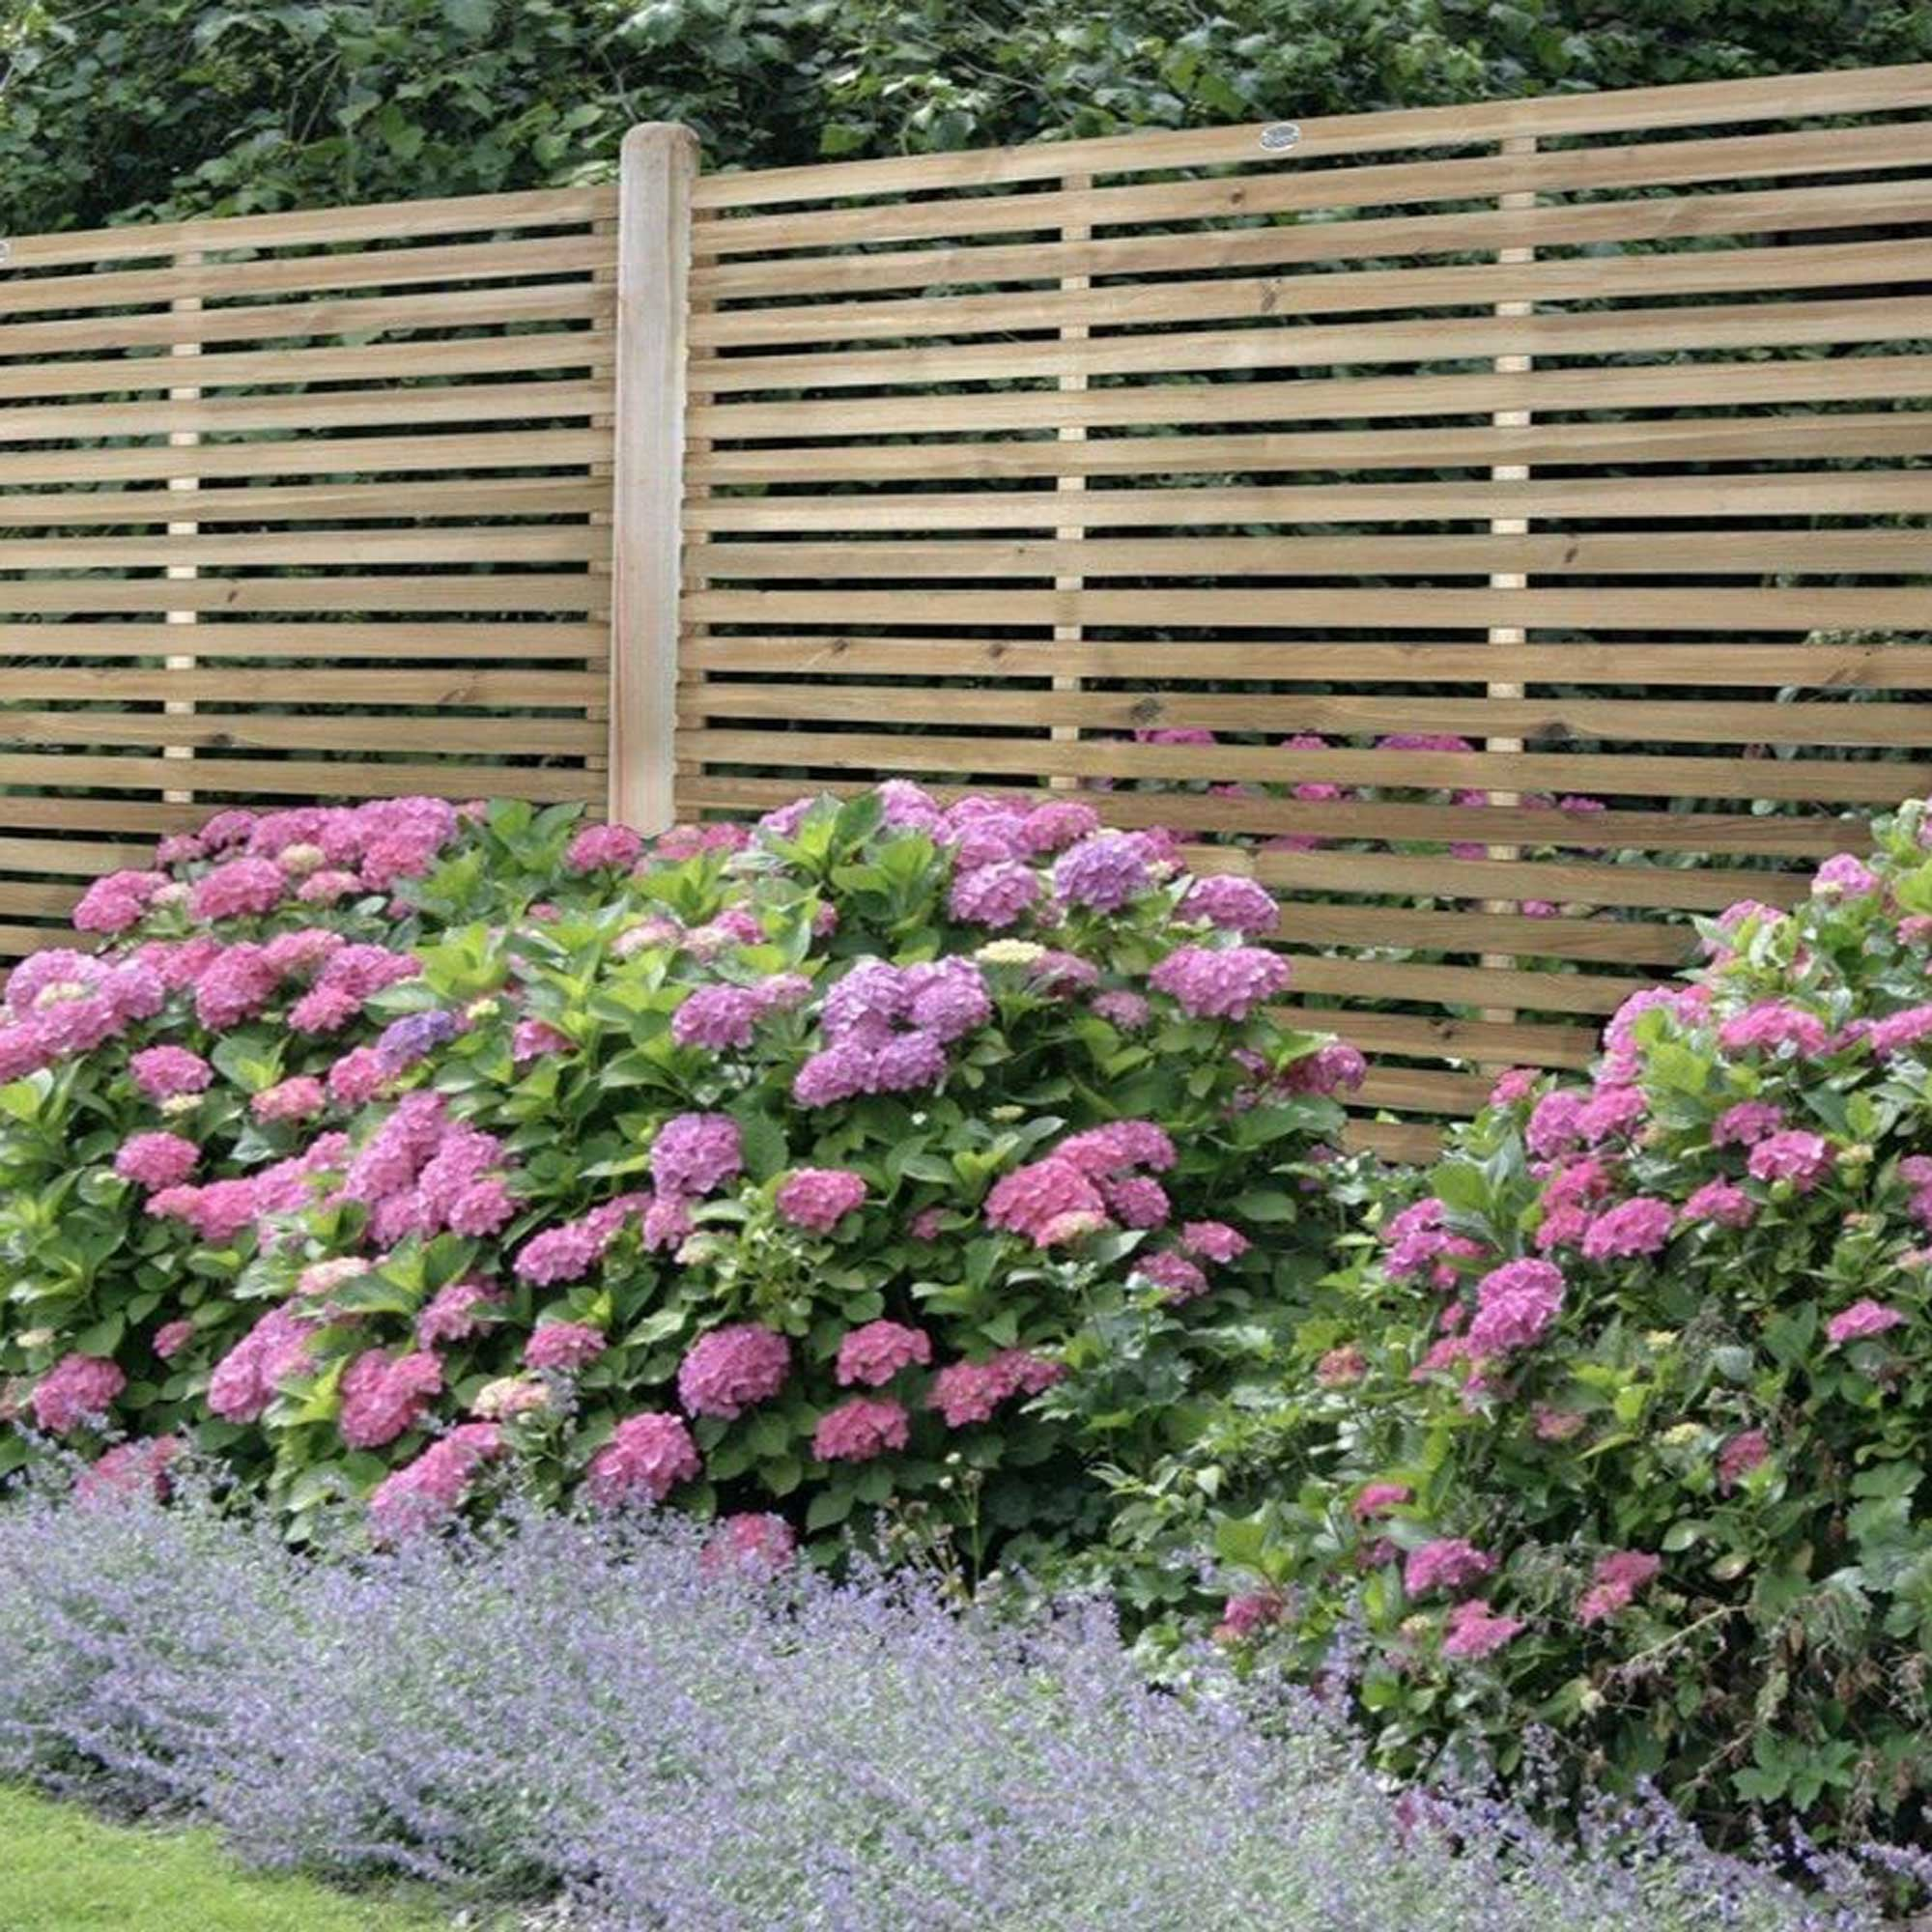 Forest Garden Contemporary Slatted 1 8m Fence Panel